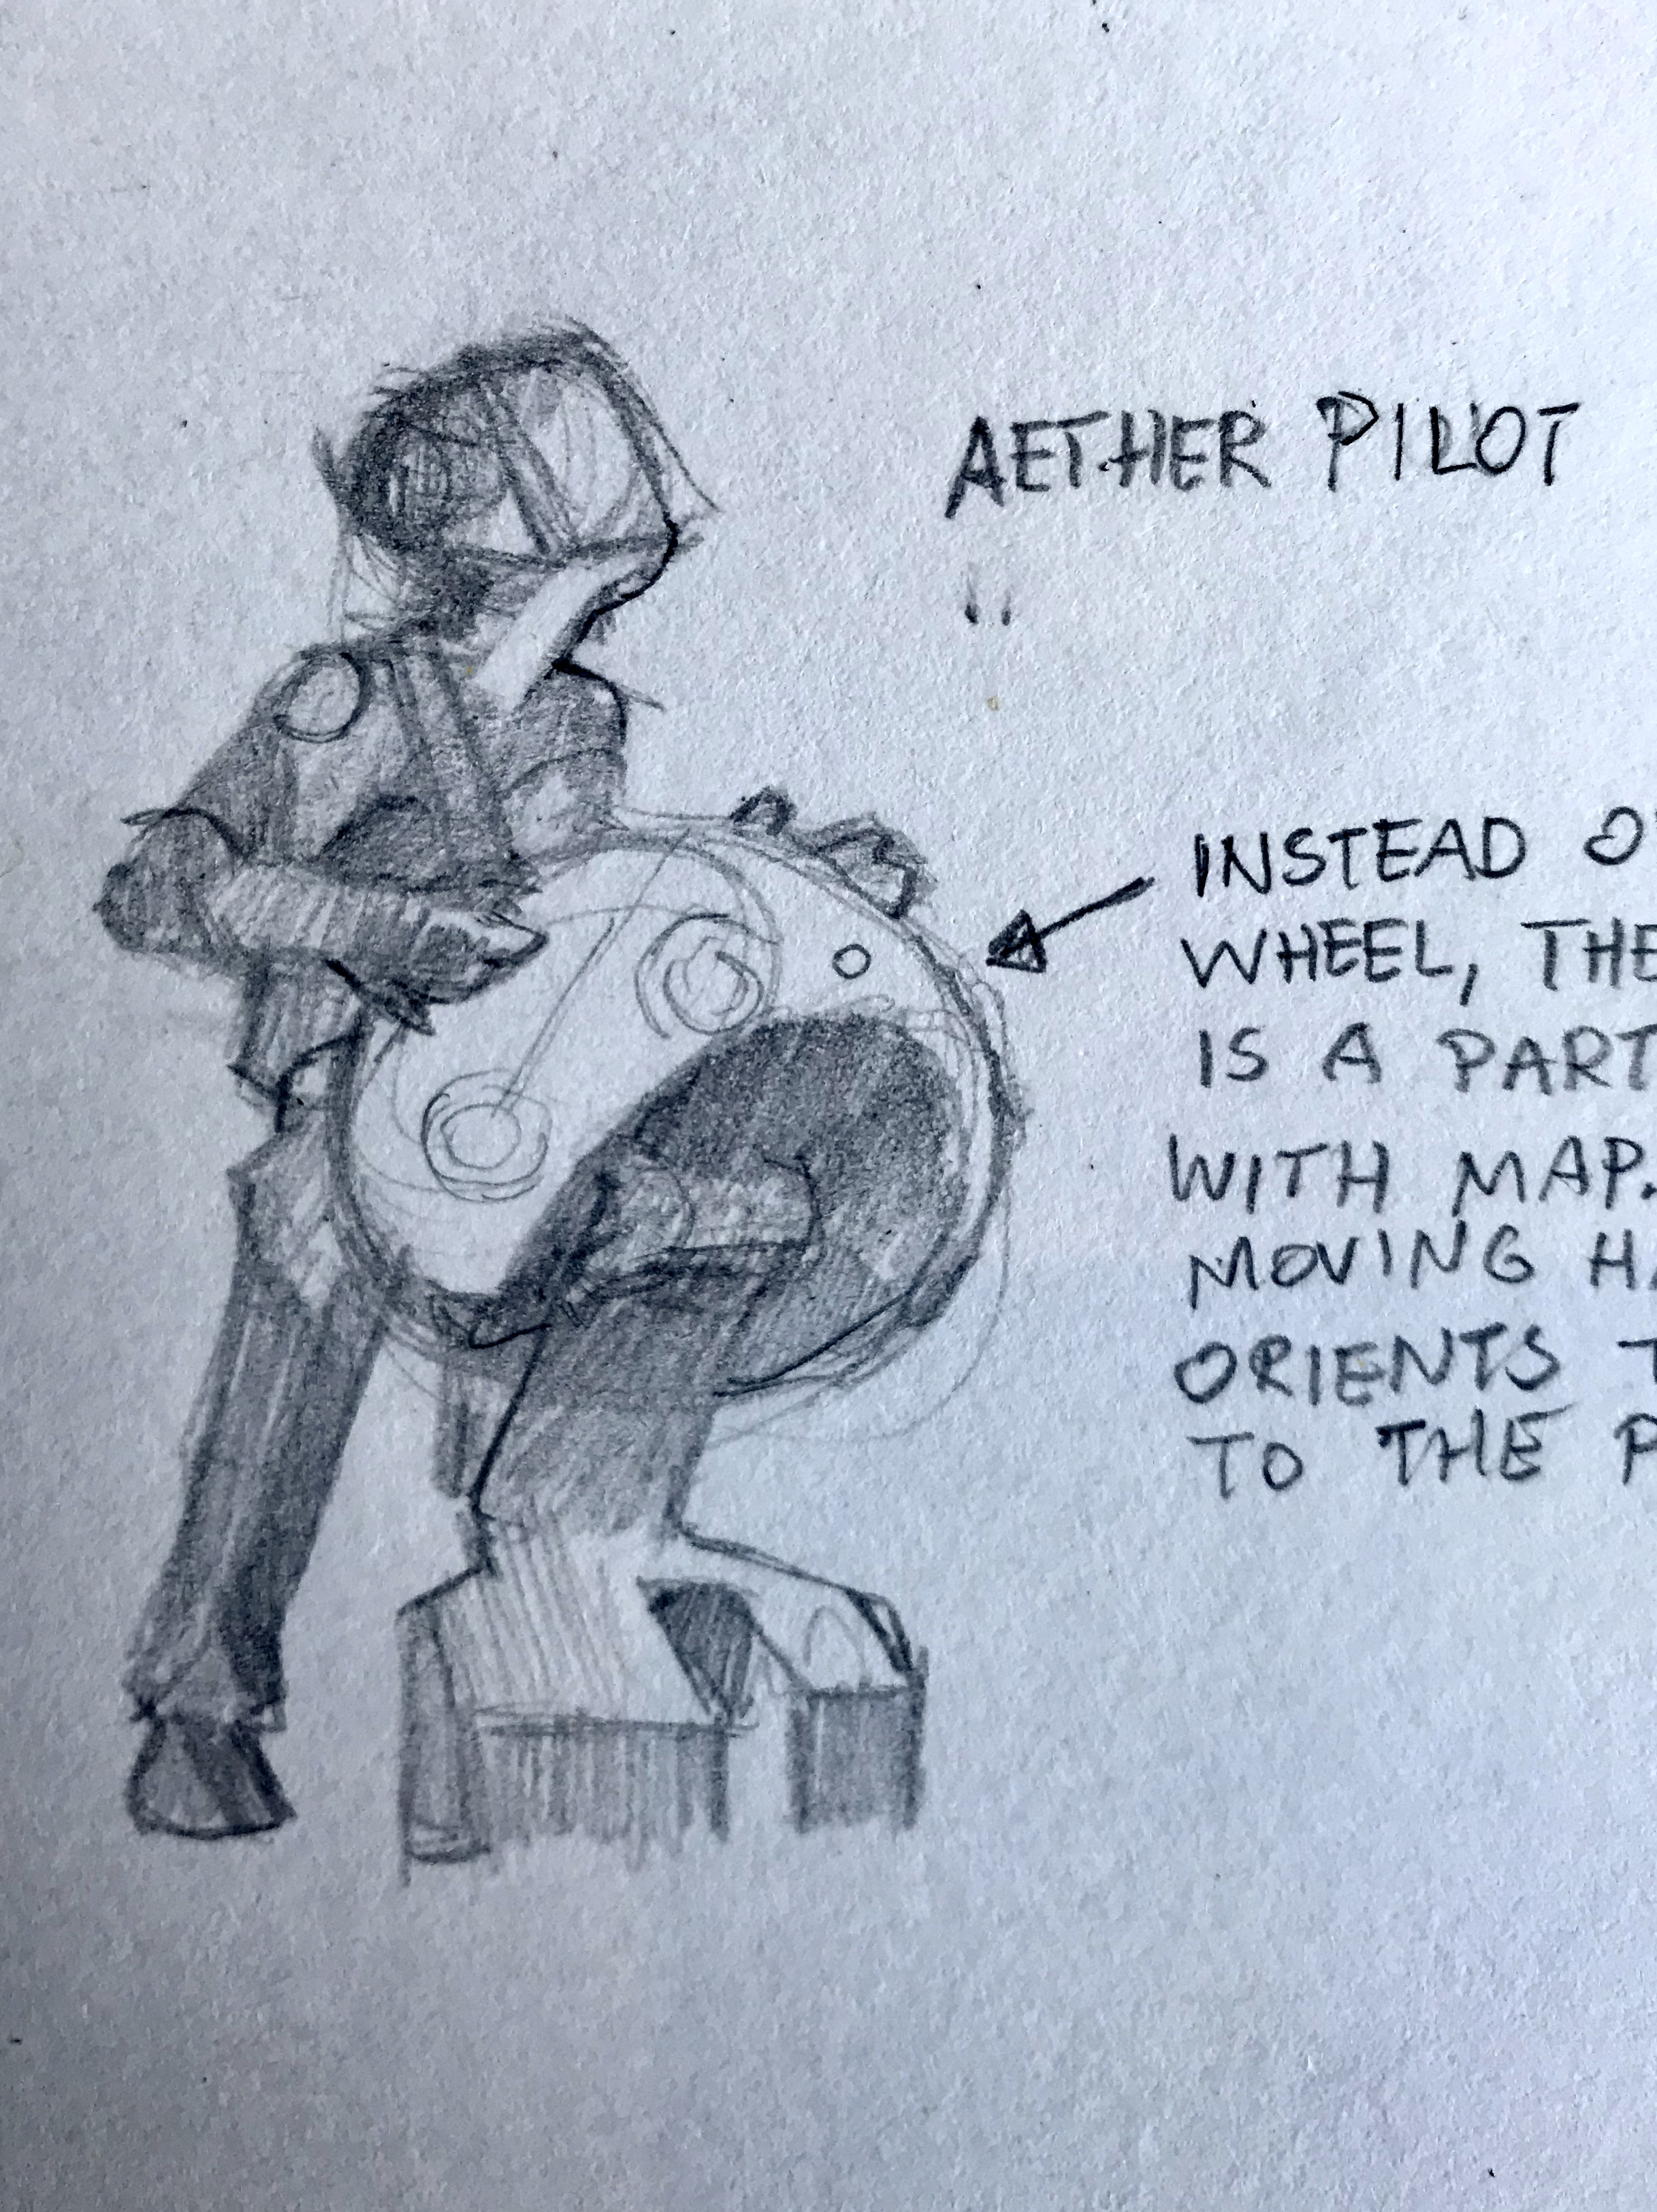 The Aether Pilot at the ships wheel.